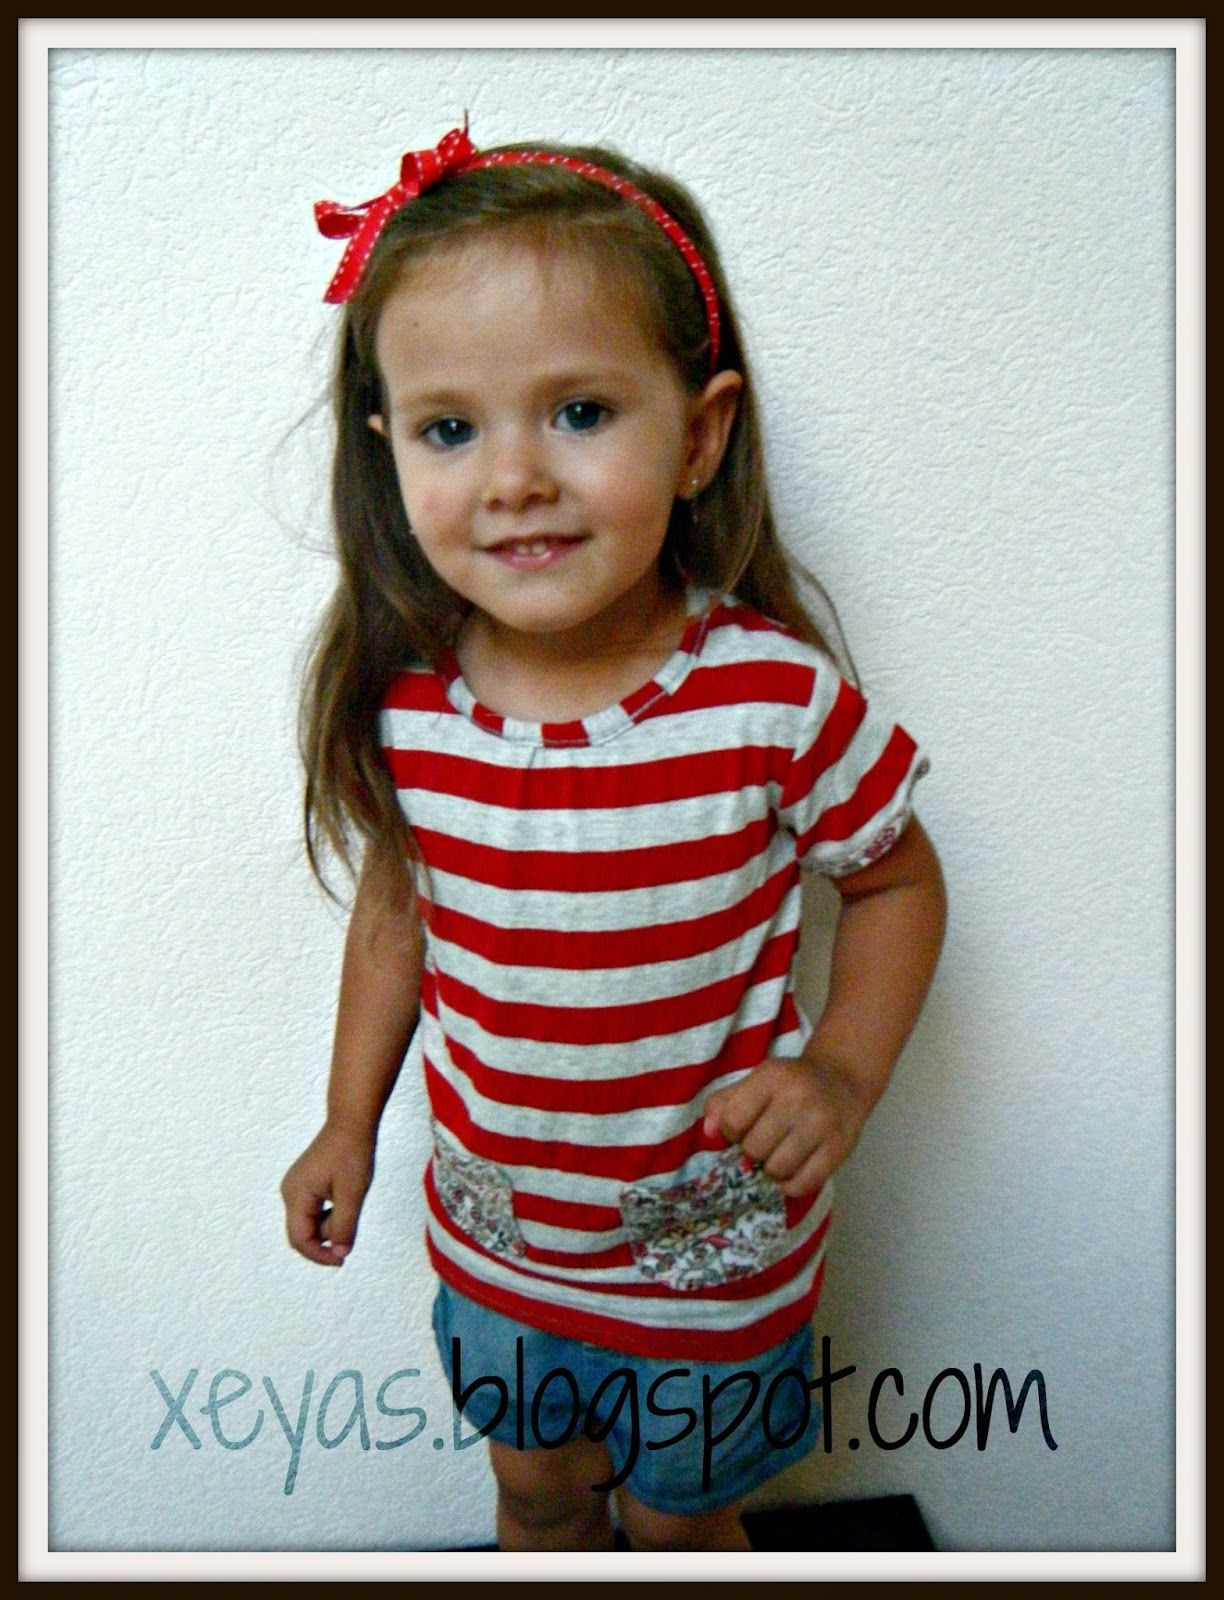 xeya's: Rayas y flores??